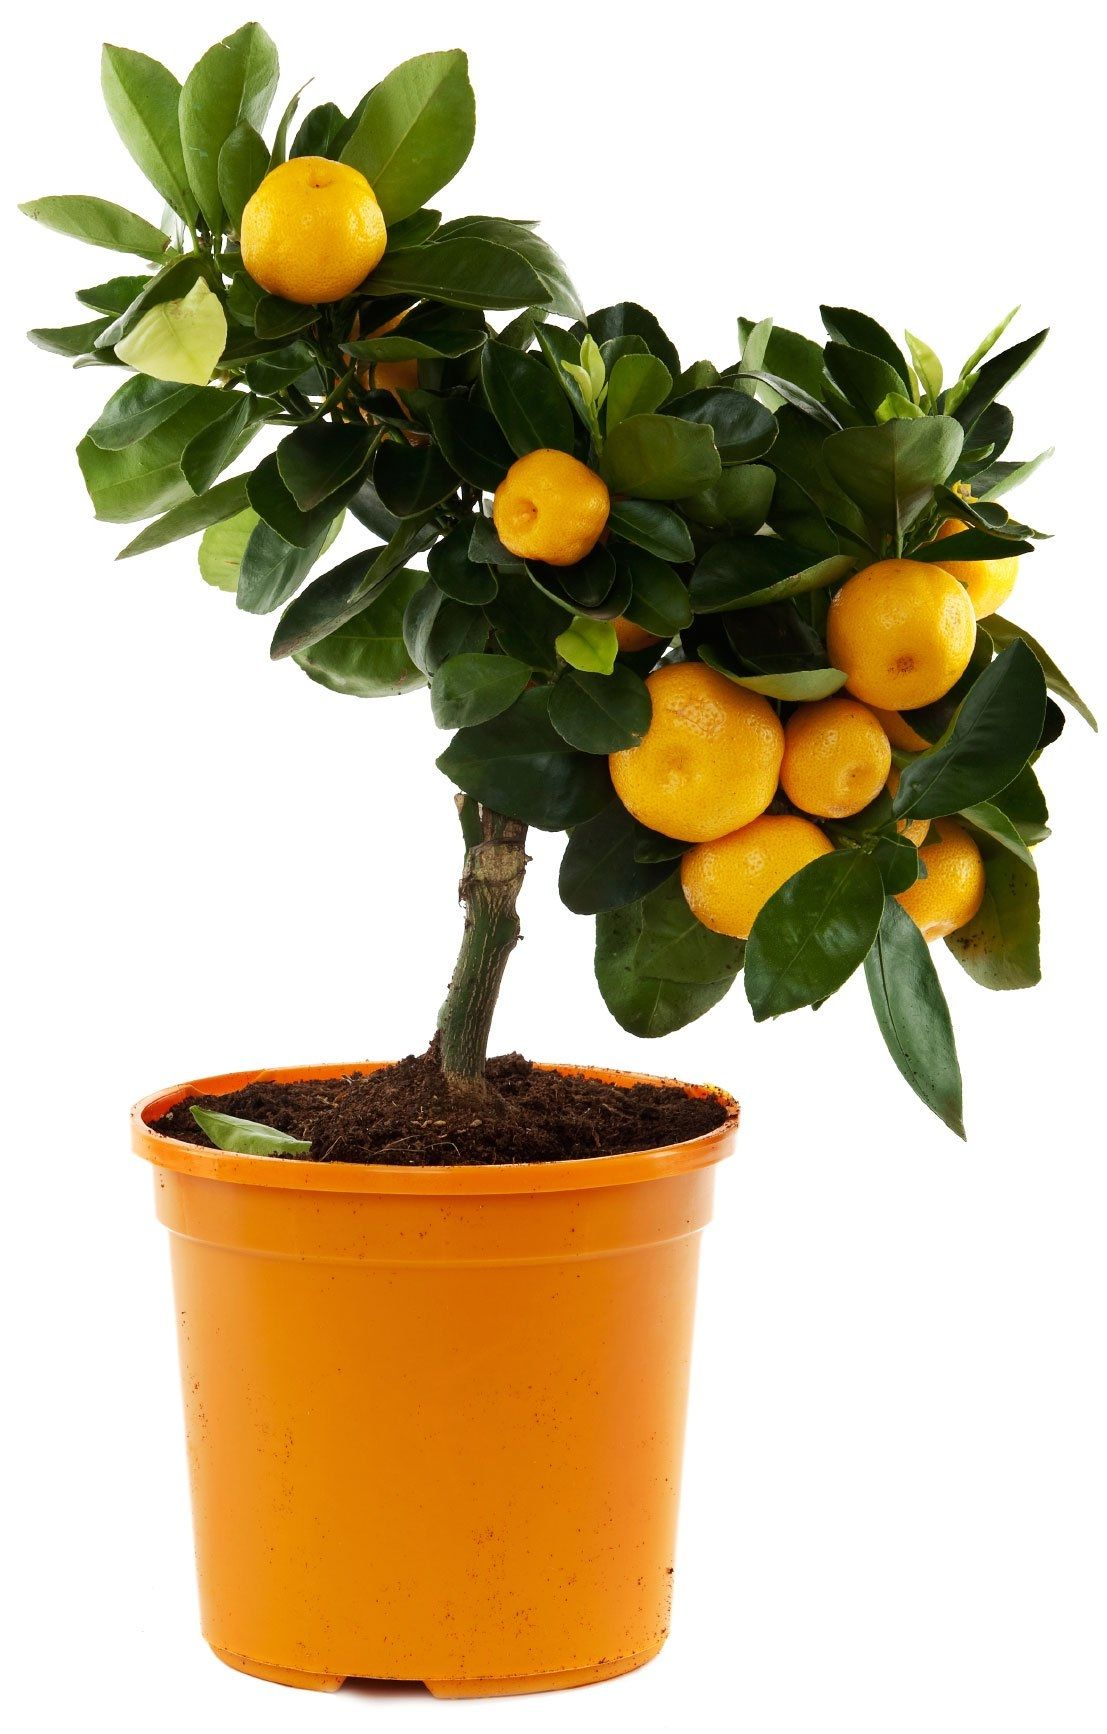 Best Photo Of Fruit Plants In Pots In The Small Backyard The Plant Ought To Be Fertilised Every A Couple Of Months With Water Soluble Ferti Tanaman Buah Kebun